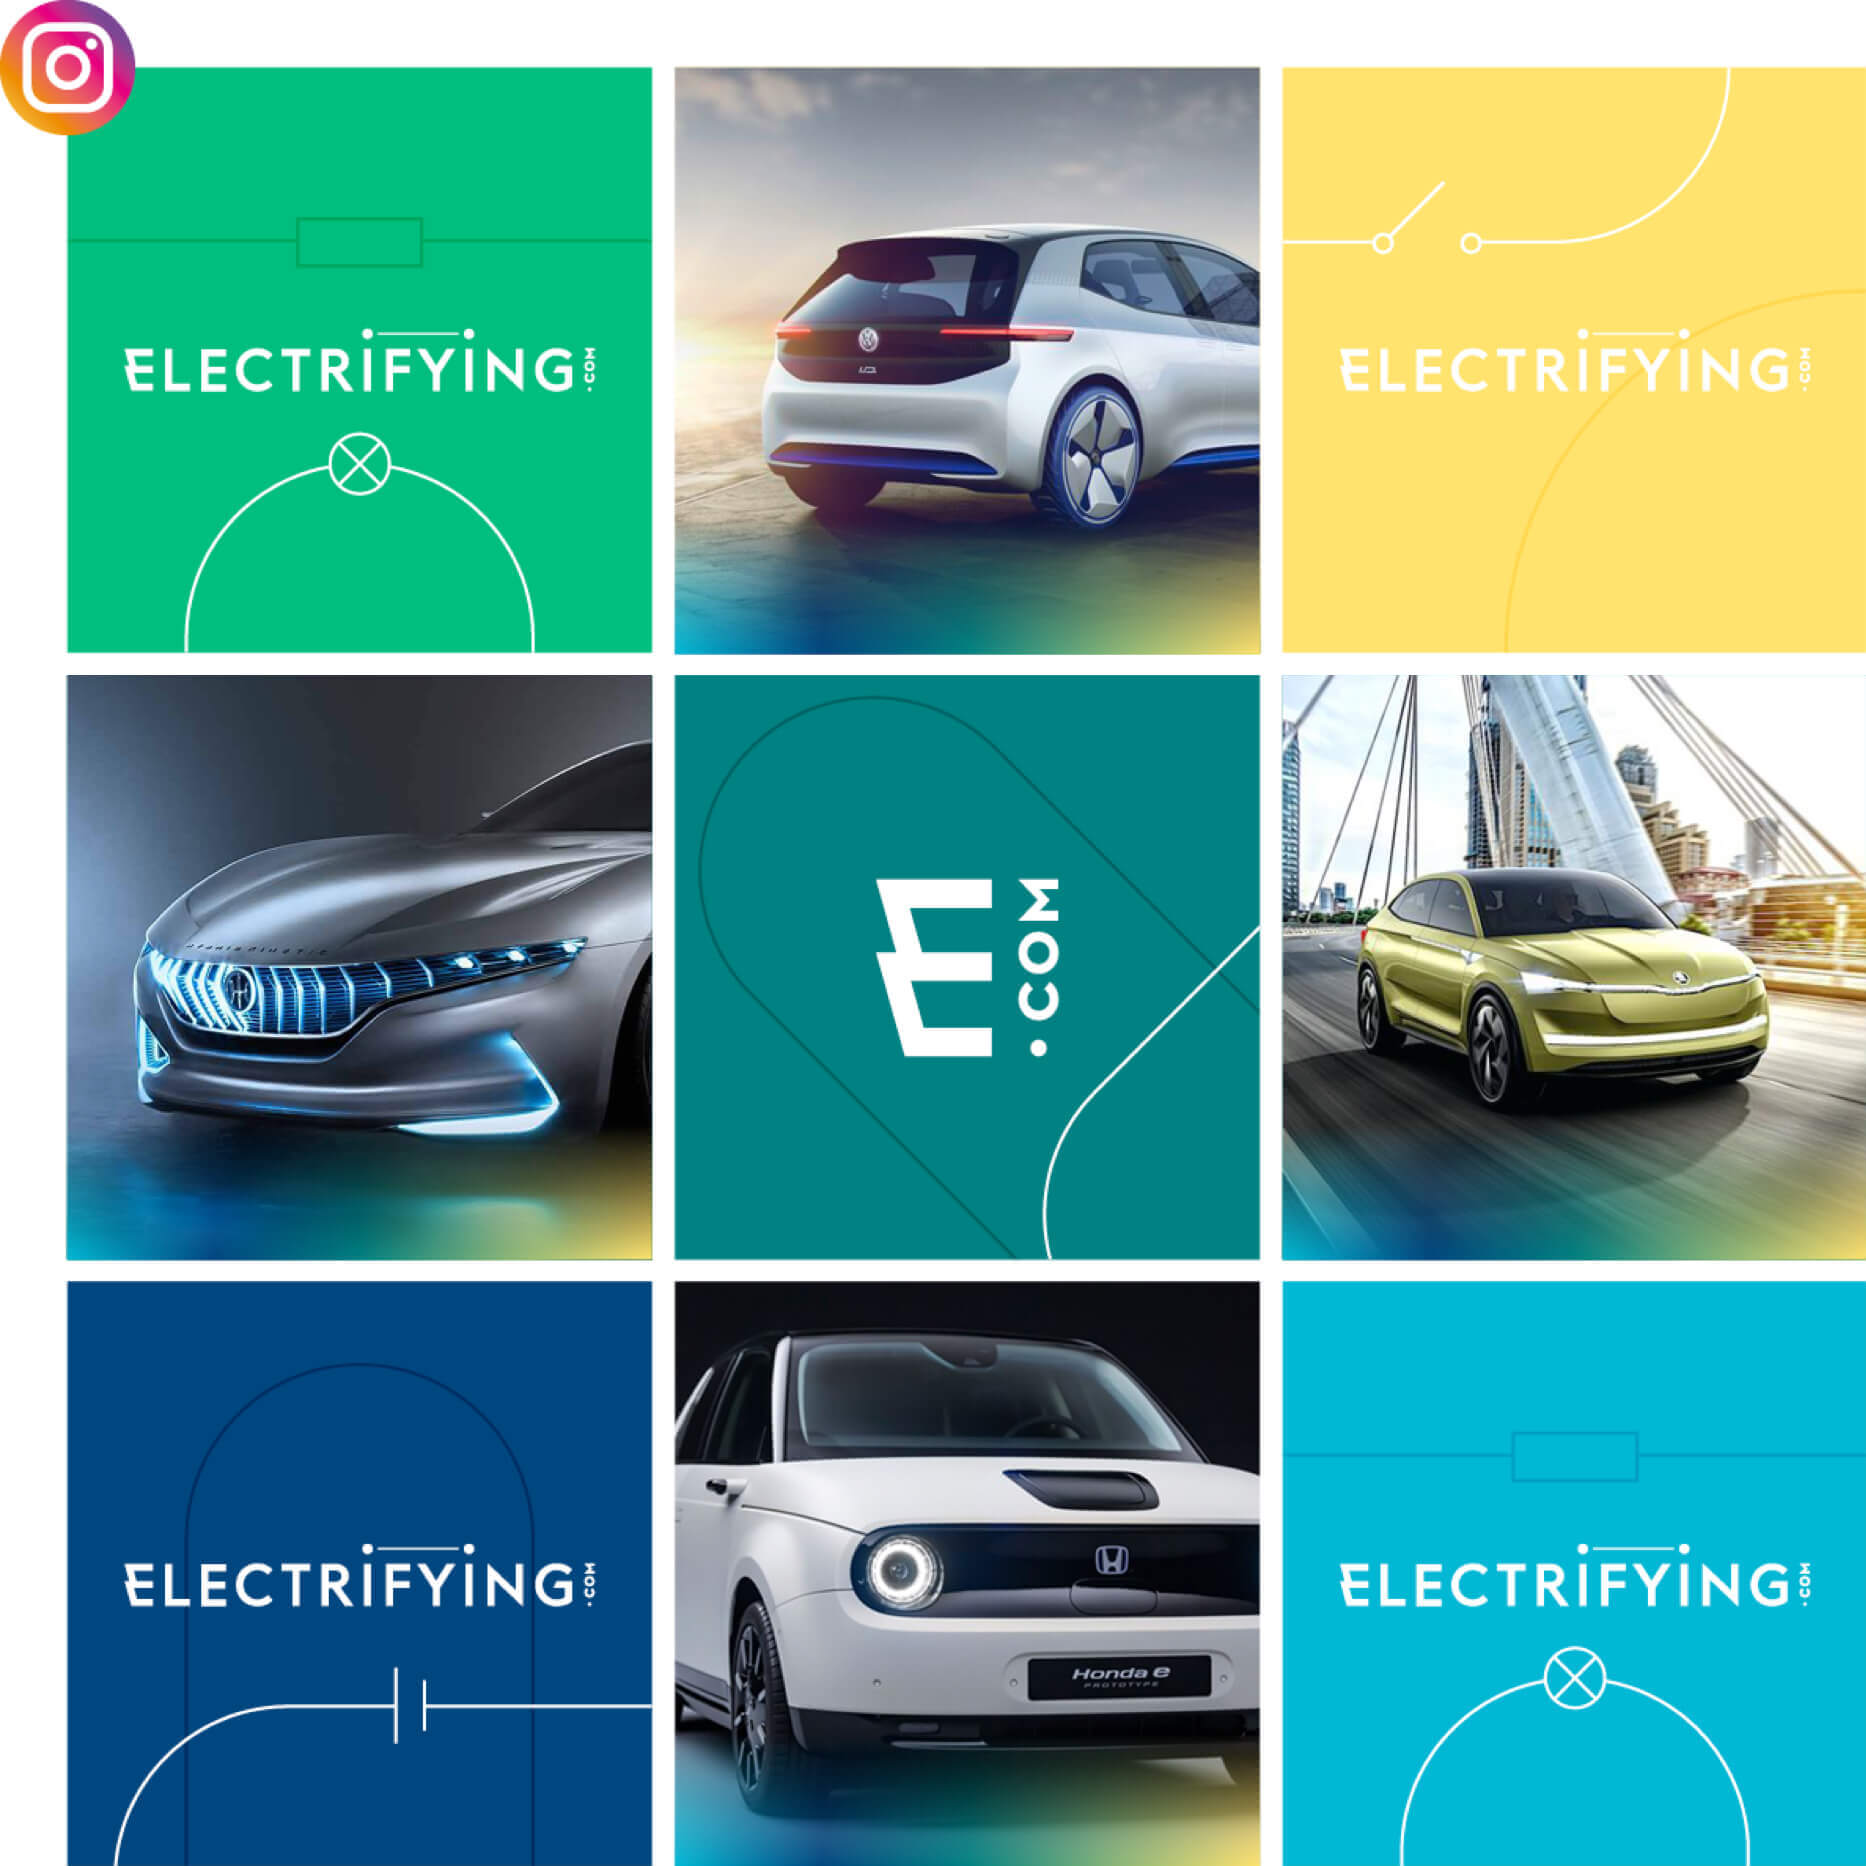 Electryfing company ad with multiple pictures of cars